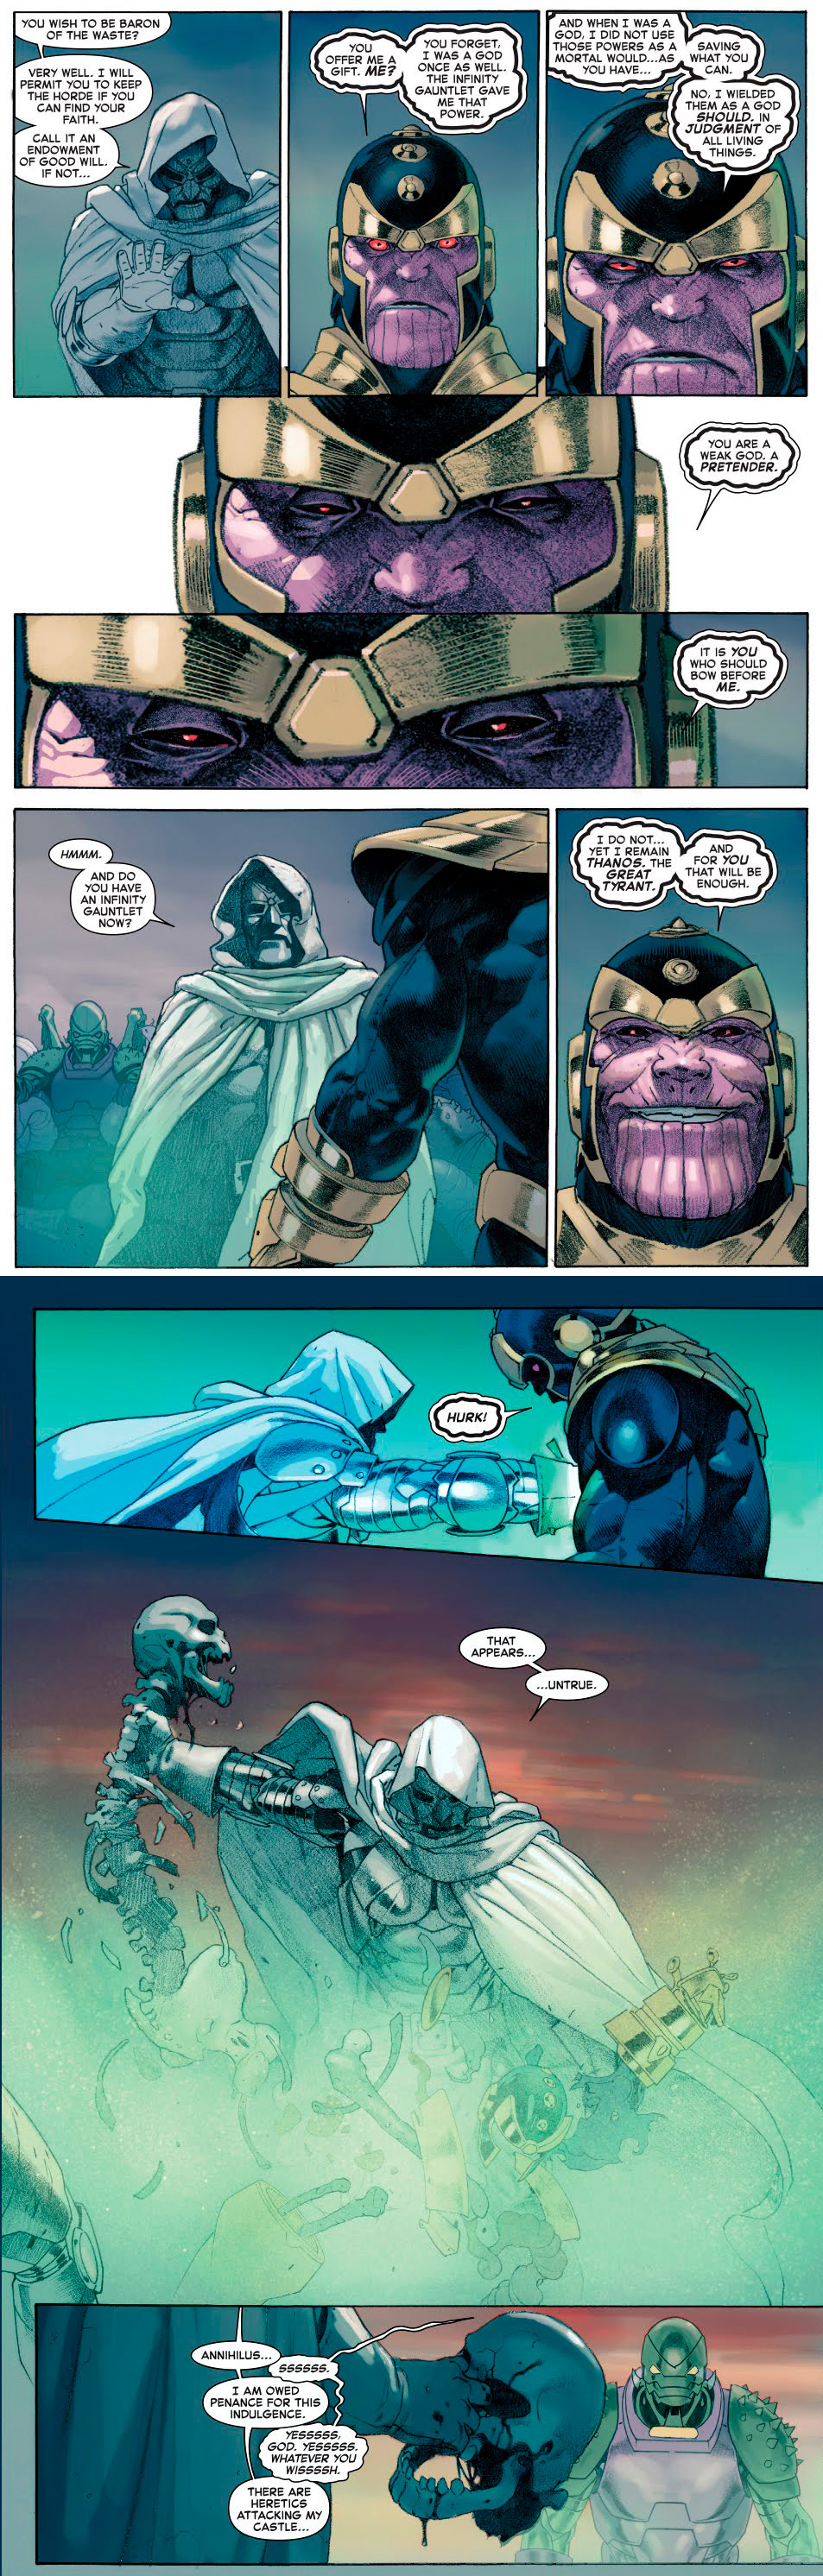 Thanos and Doctor Doom